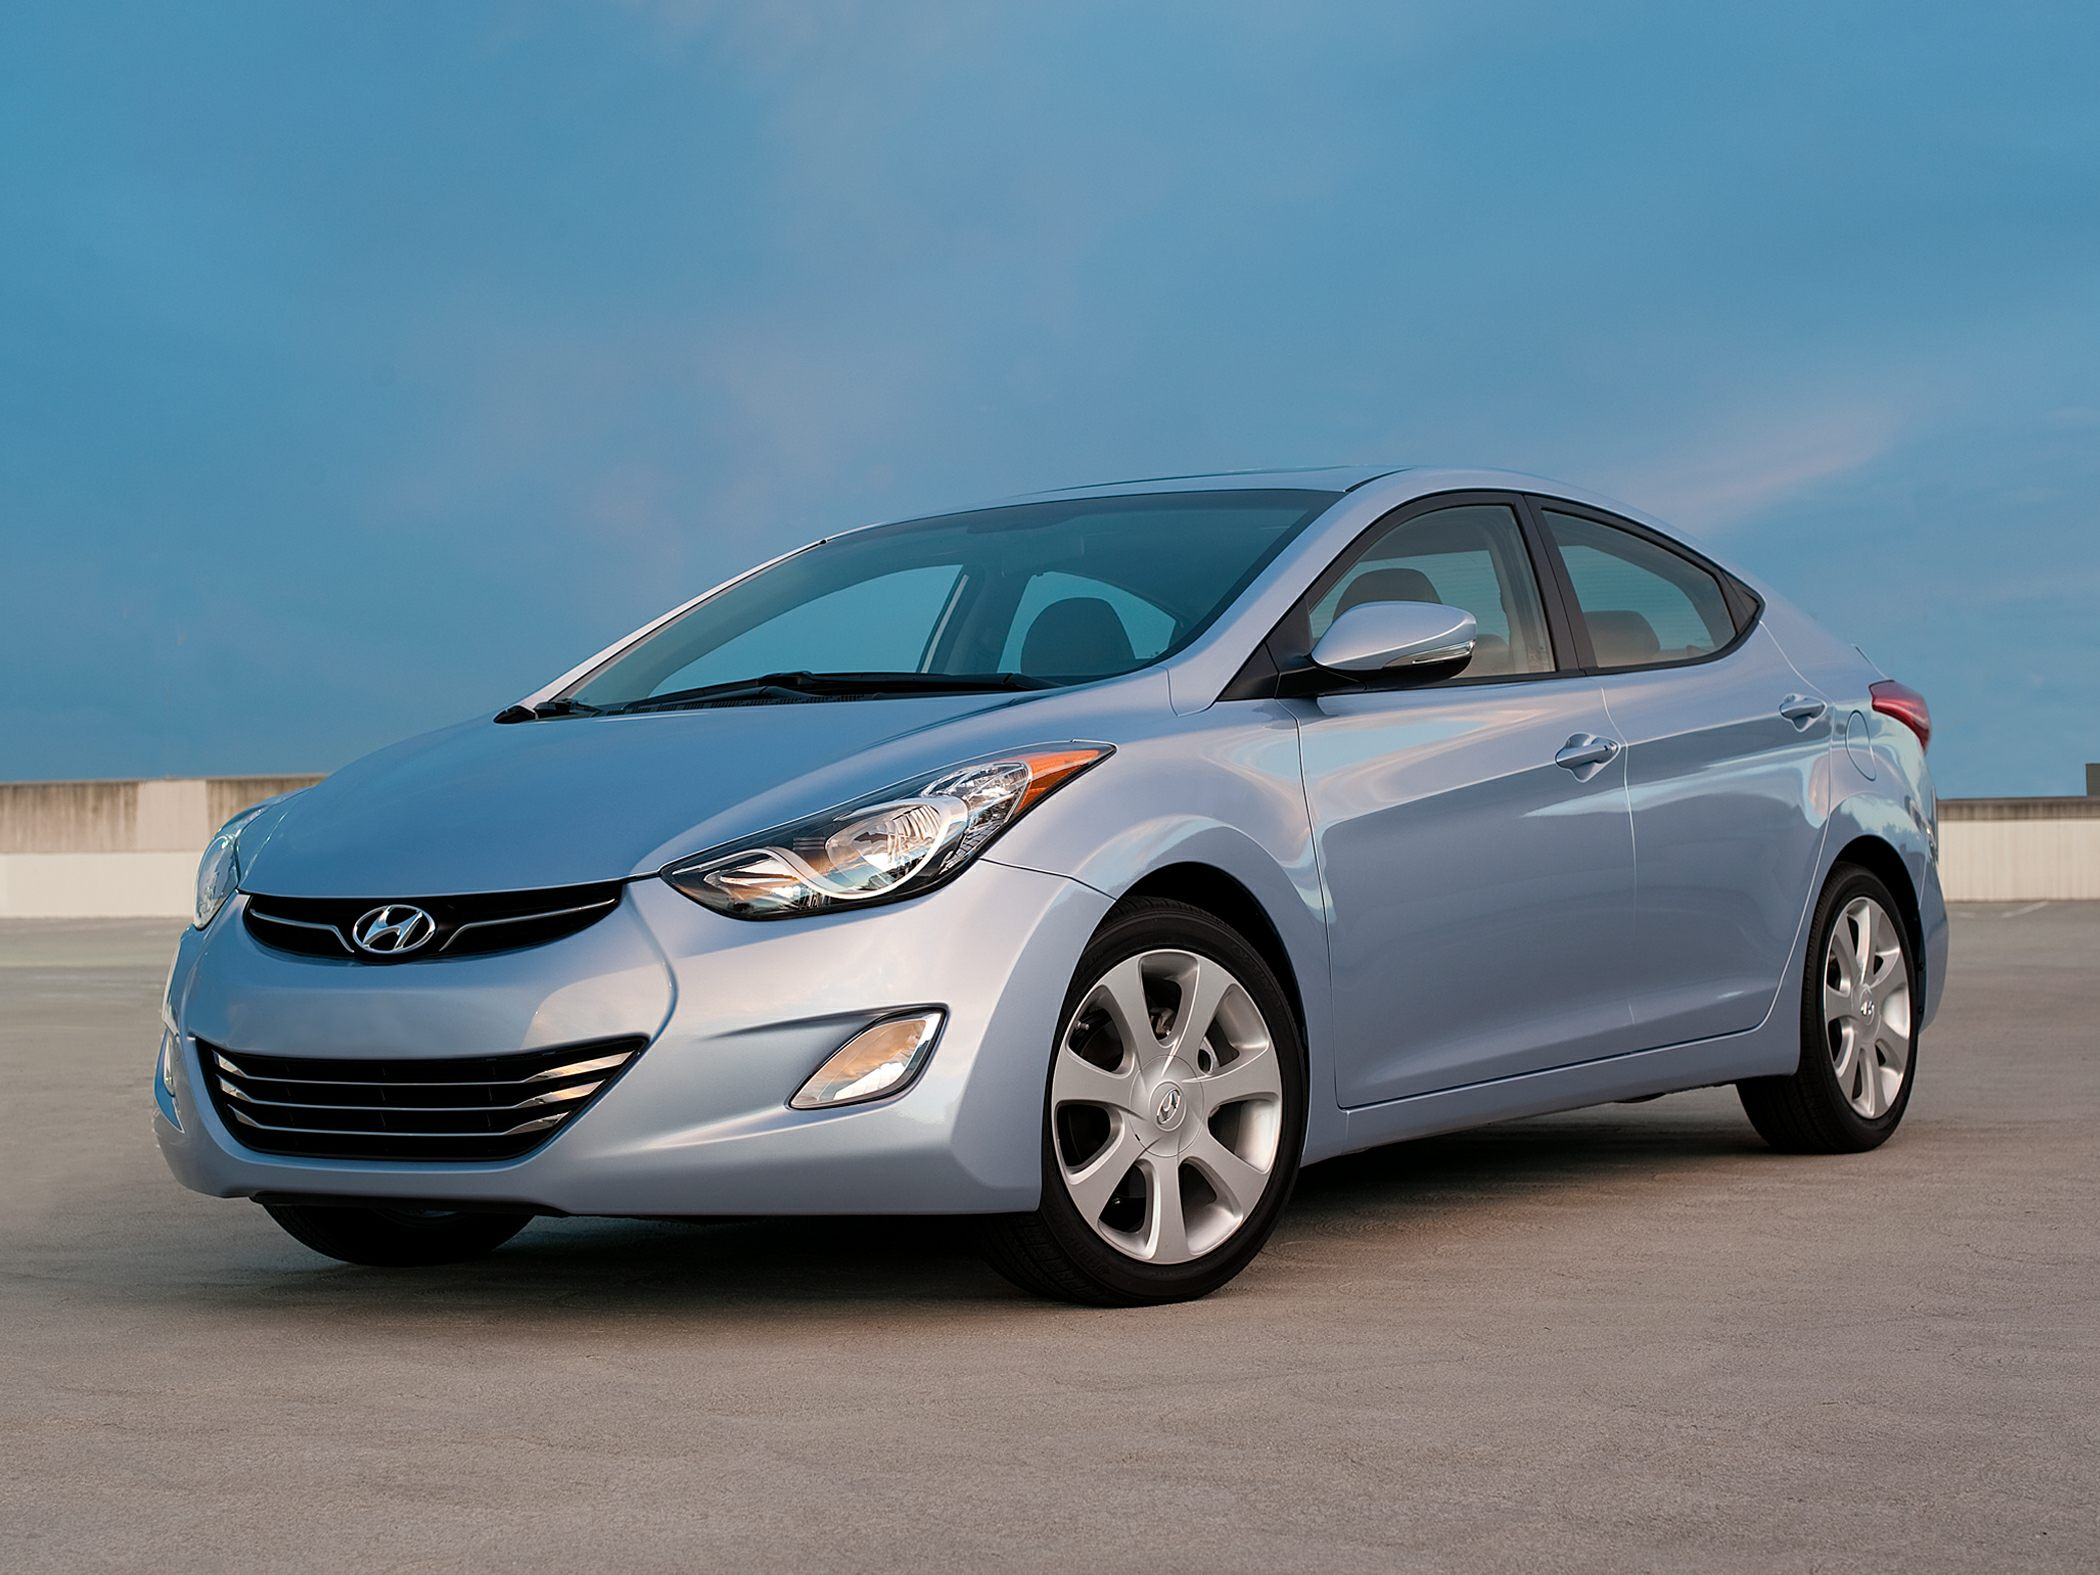 2011 Hyundai Elantra Limited Gray Super gas saver Fuel Efficient New Arrival How economical is